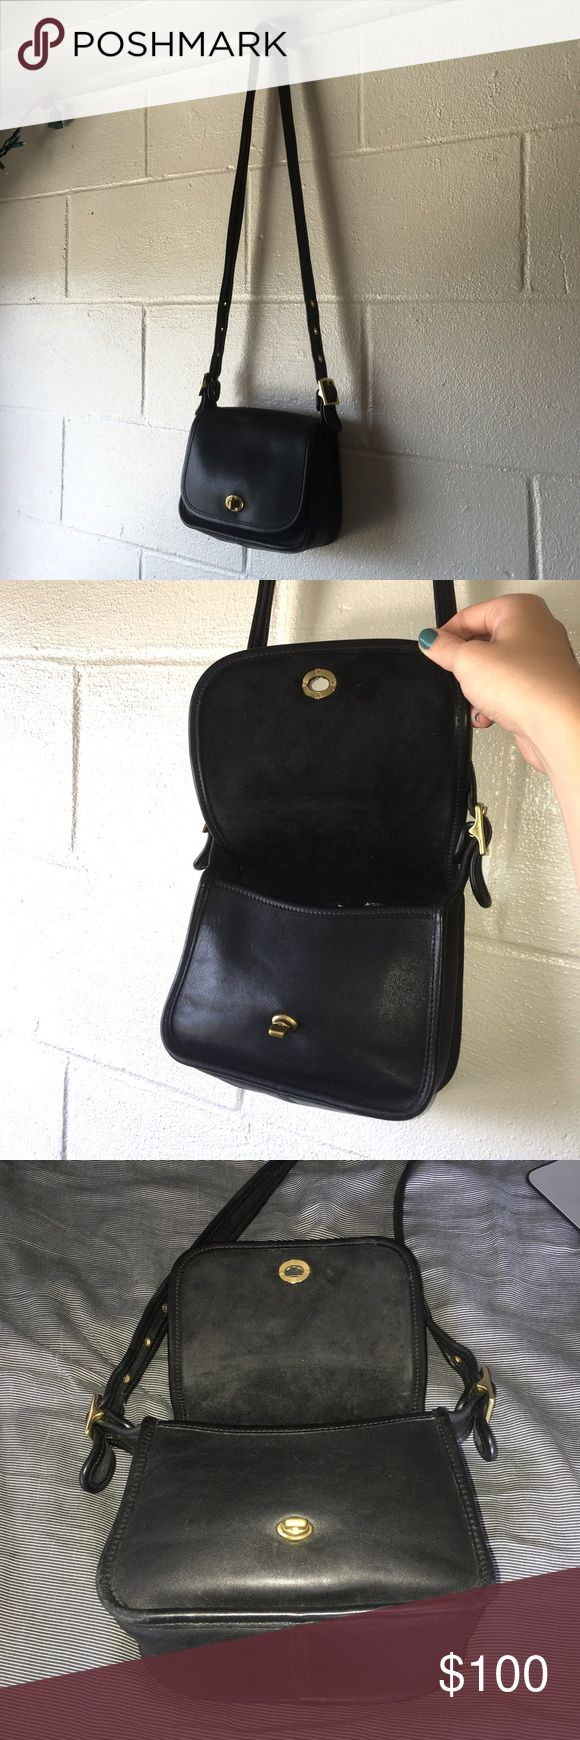 Vintage Coach Legacy Trail Saddle Bag 9965 Excellent condition. #9965. Black leather with gold hardware Coach Bags